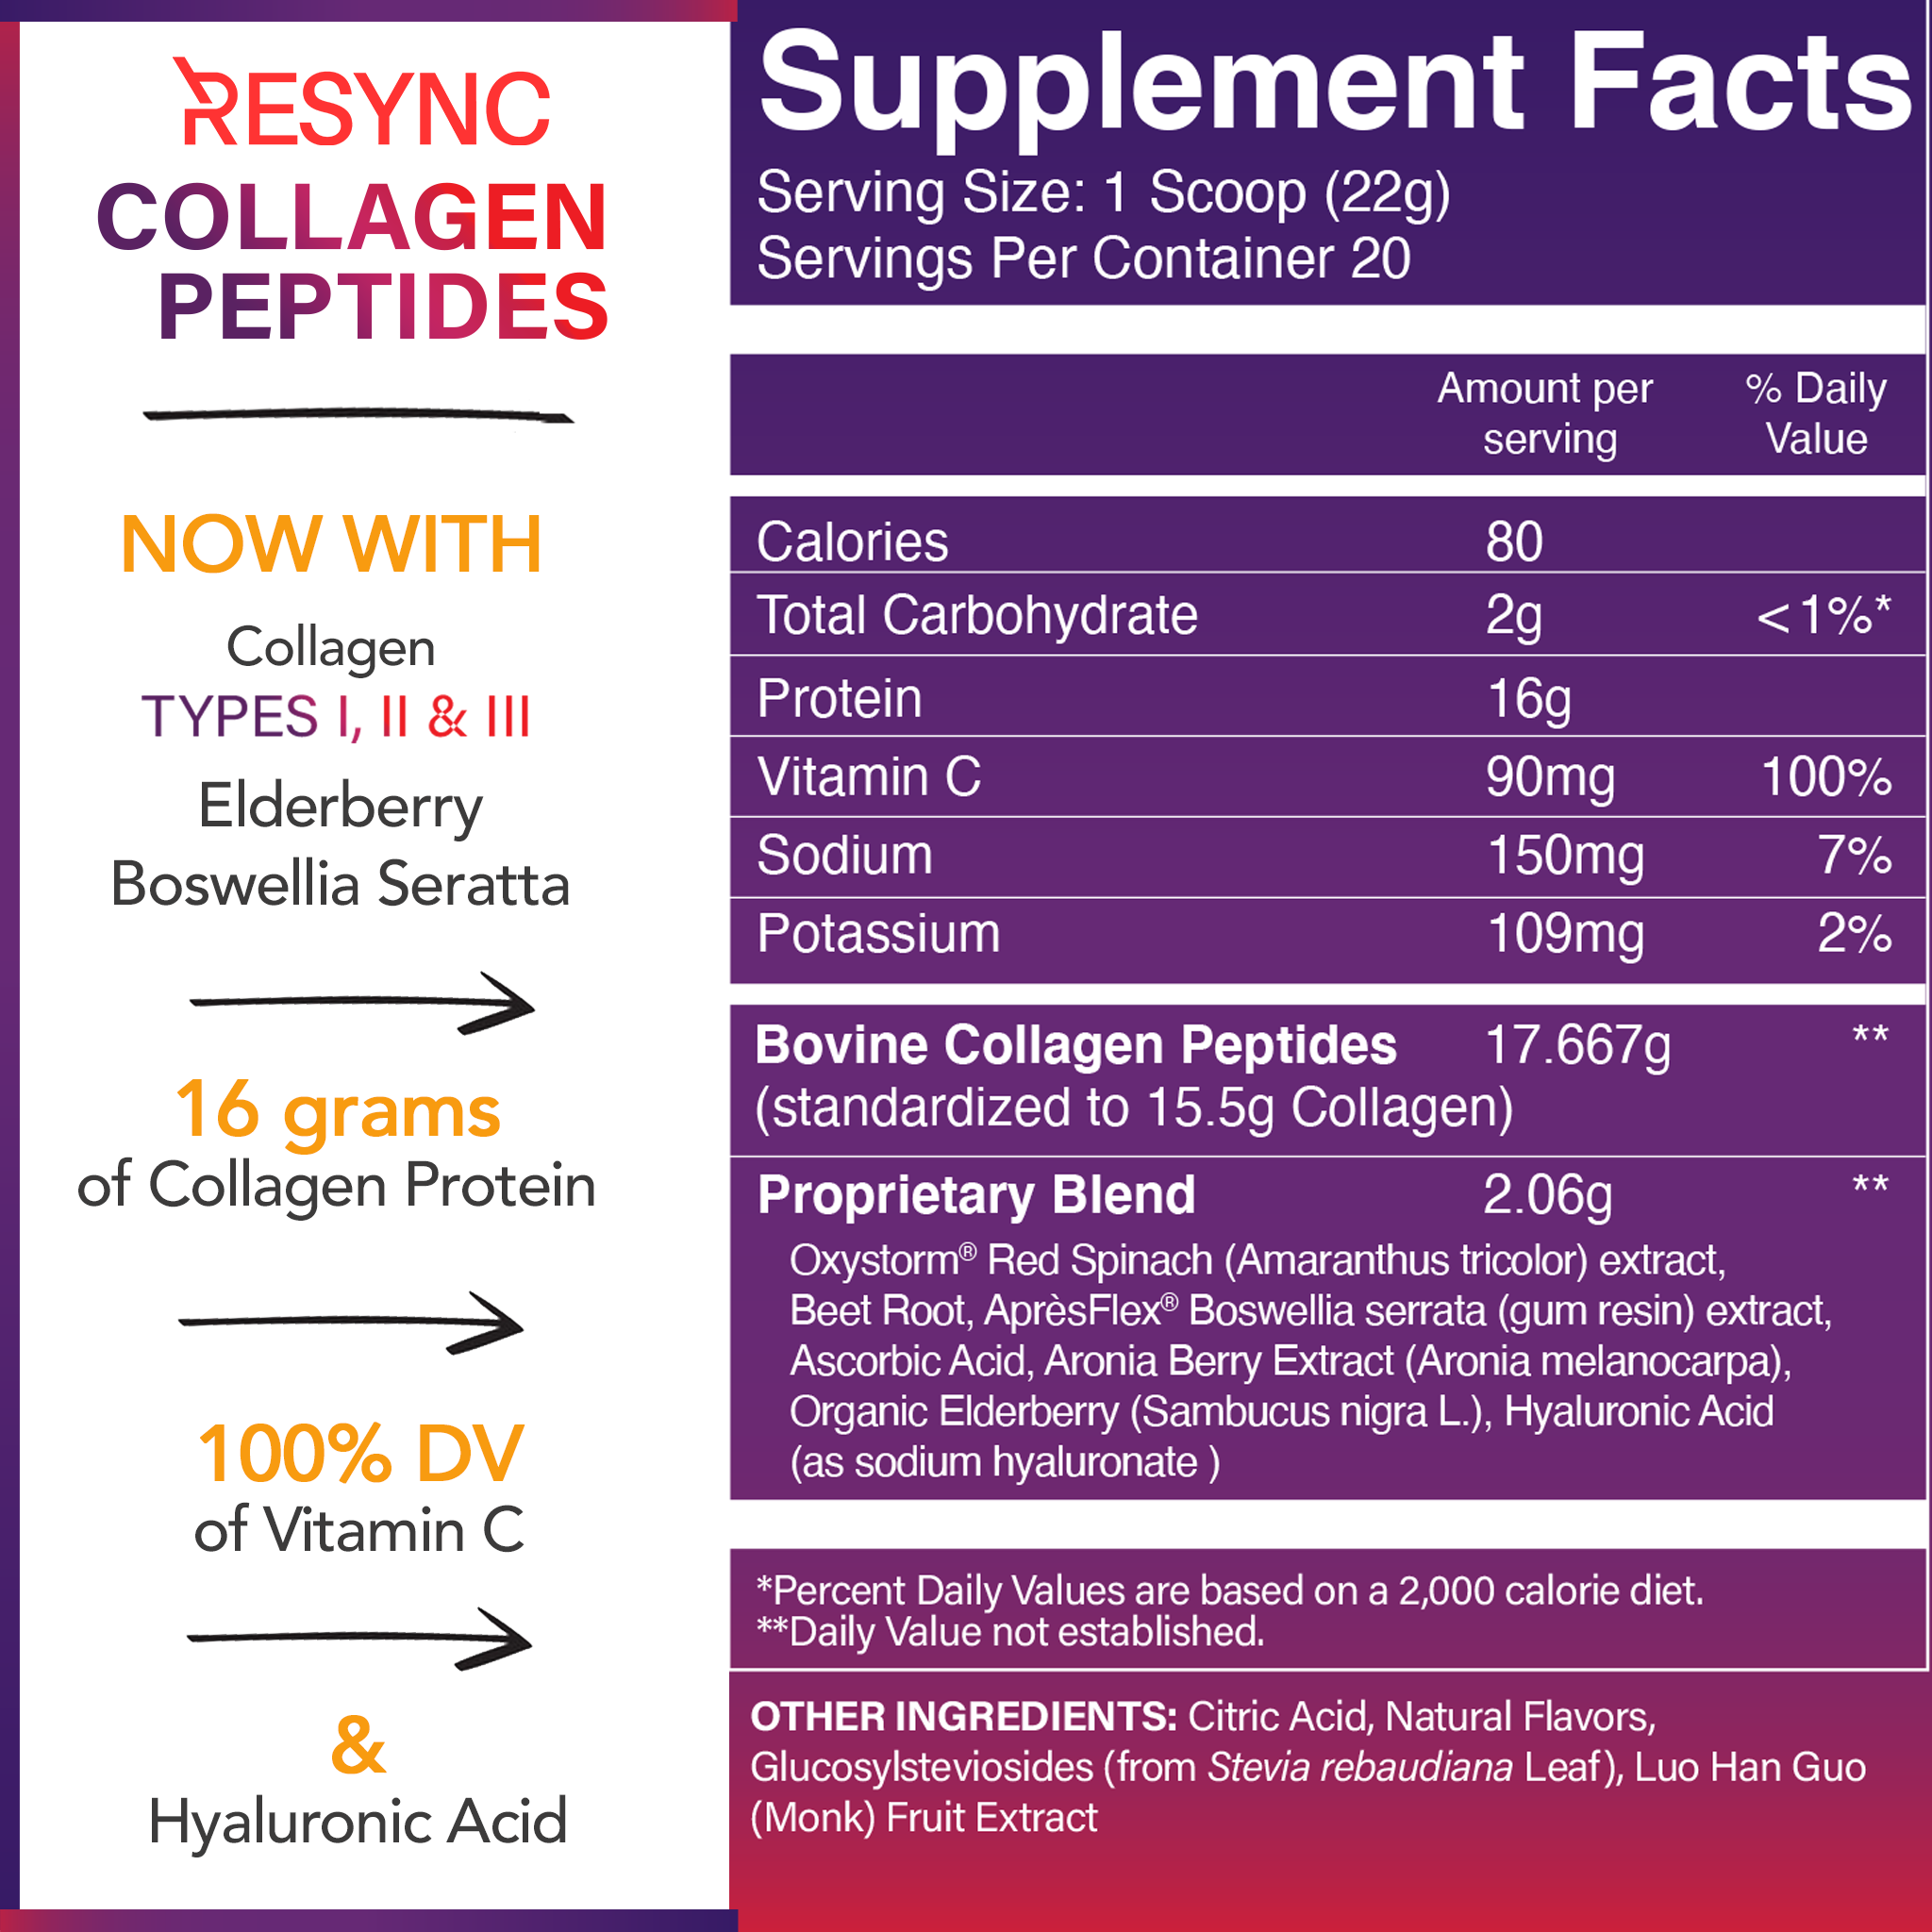 Resync Premium Collagen Peptides